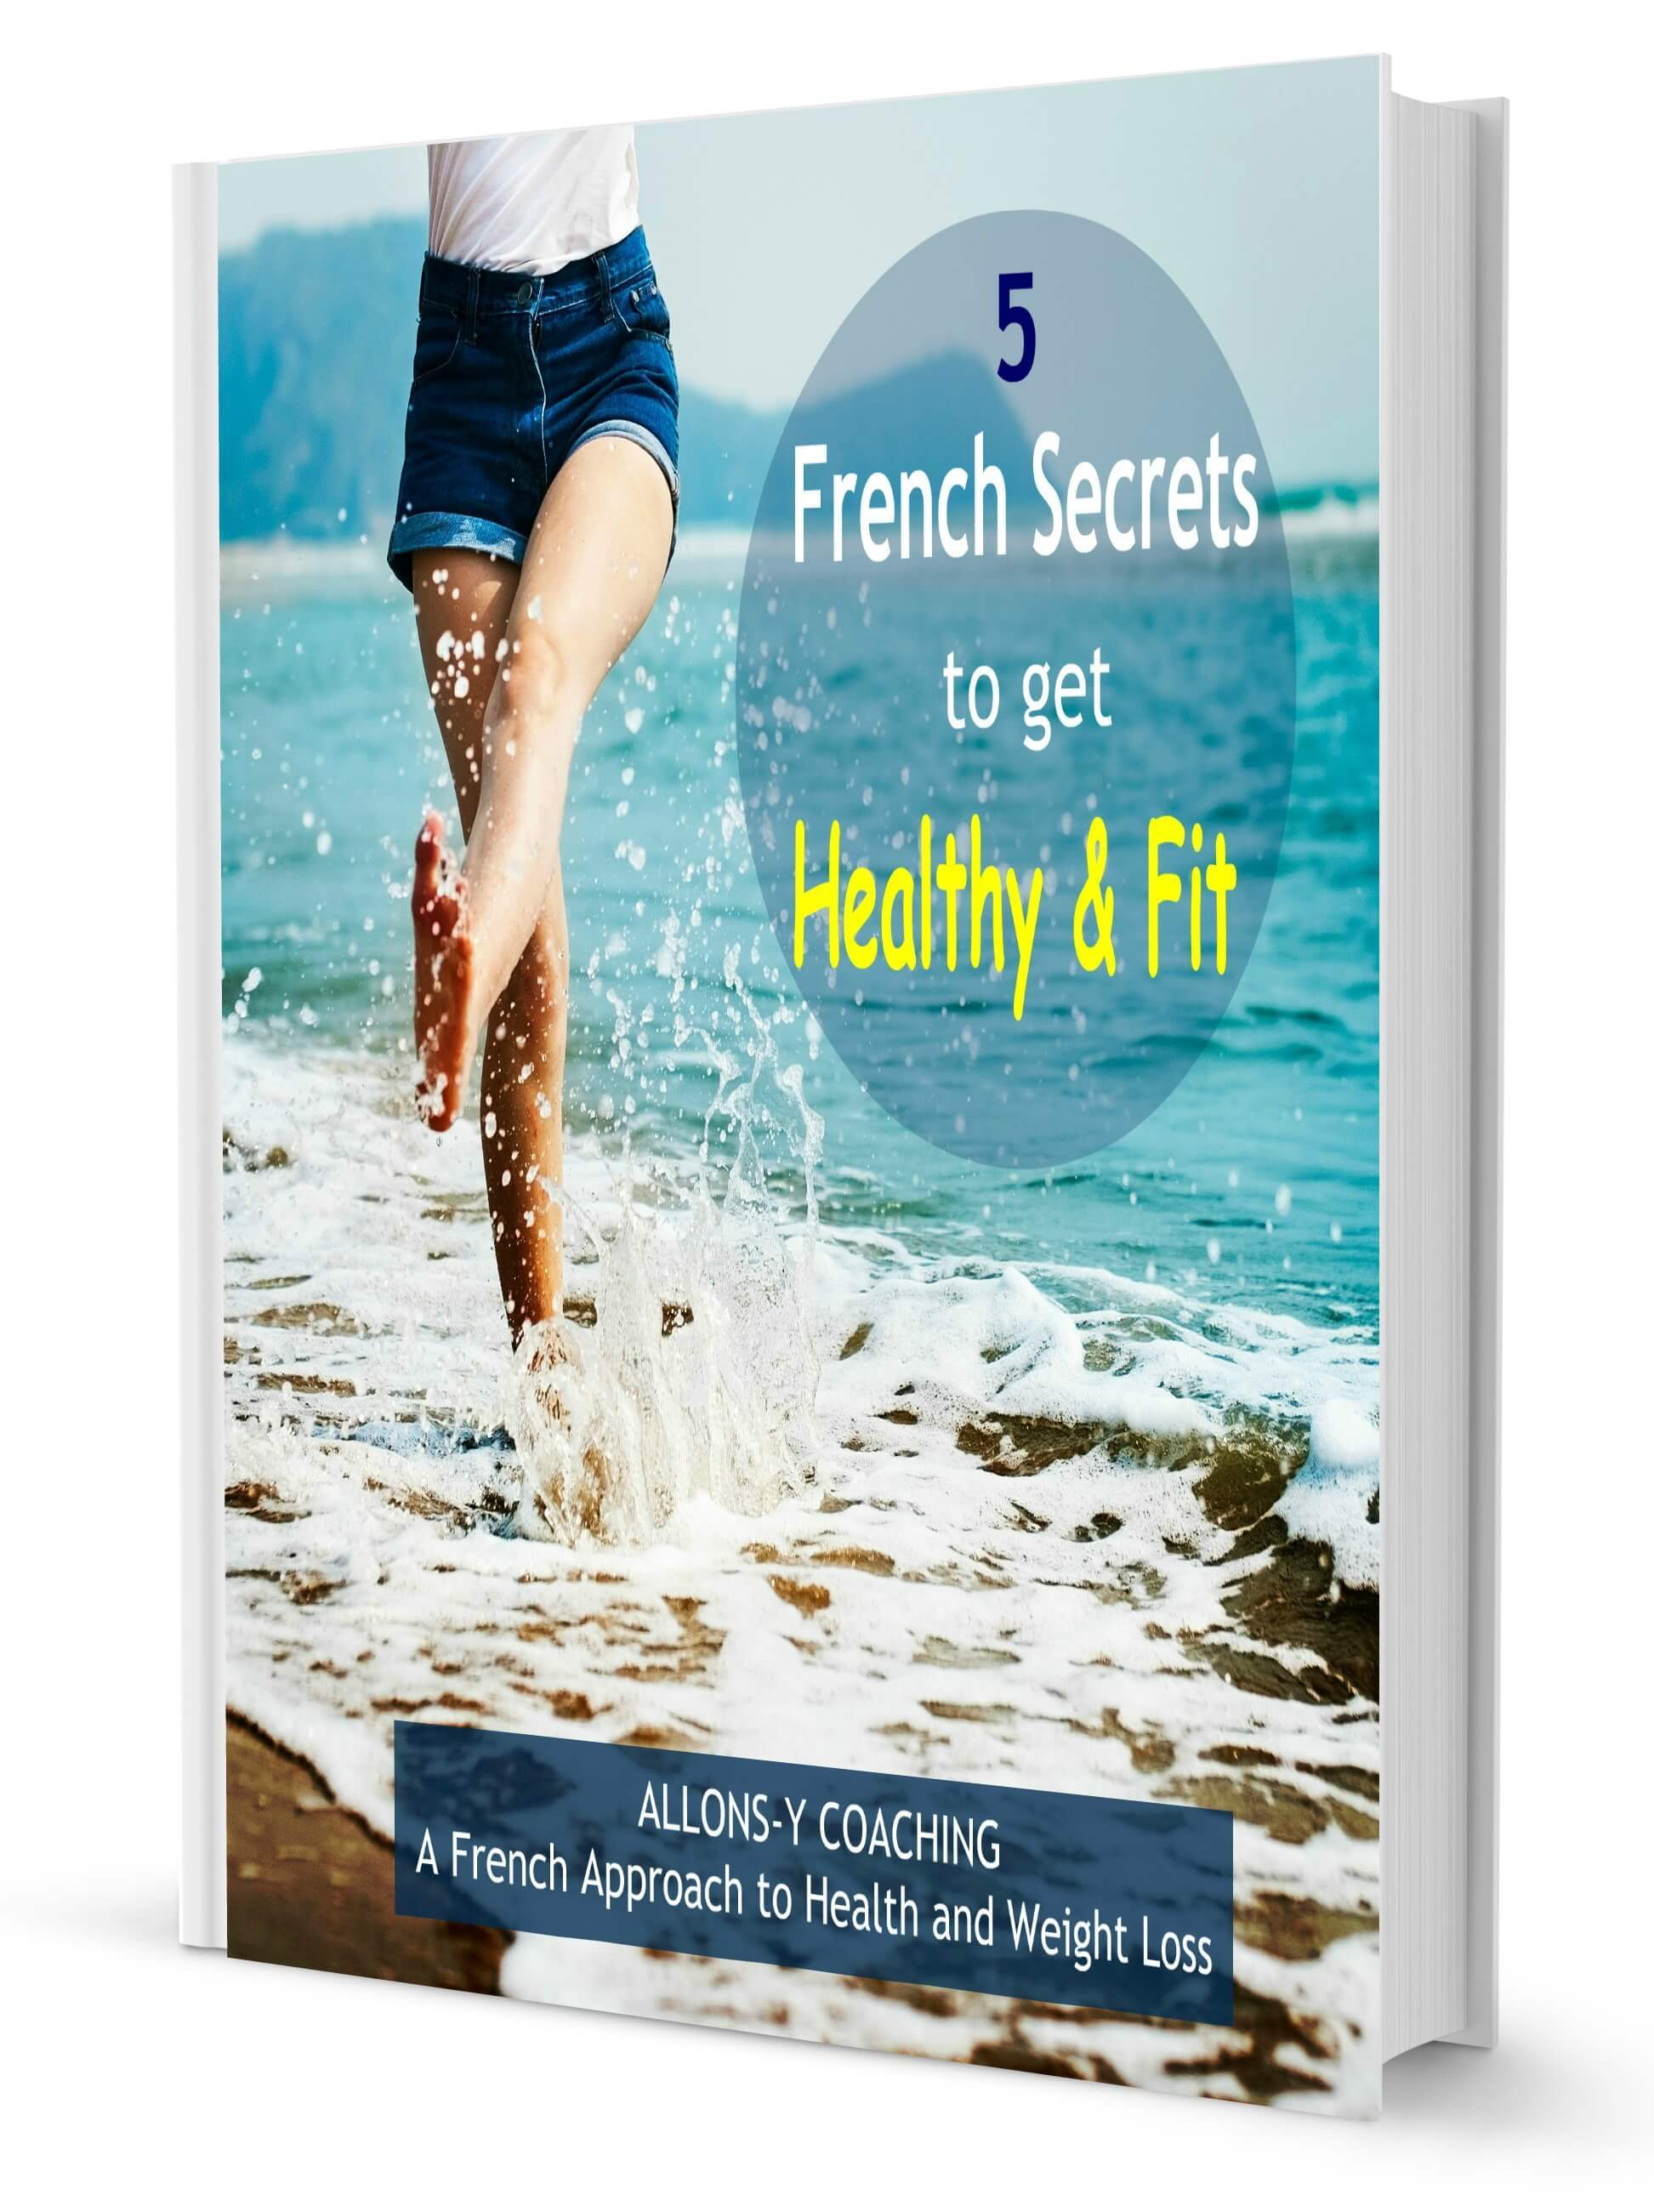 eGuide Cover for 5 French secrets to get healthy and fit